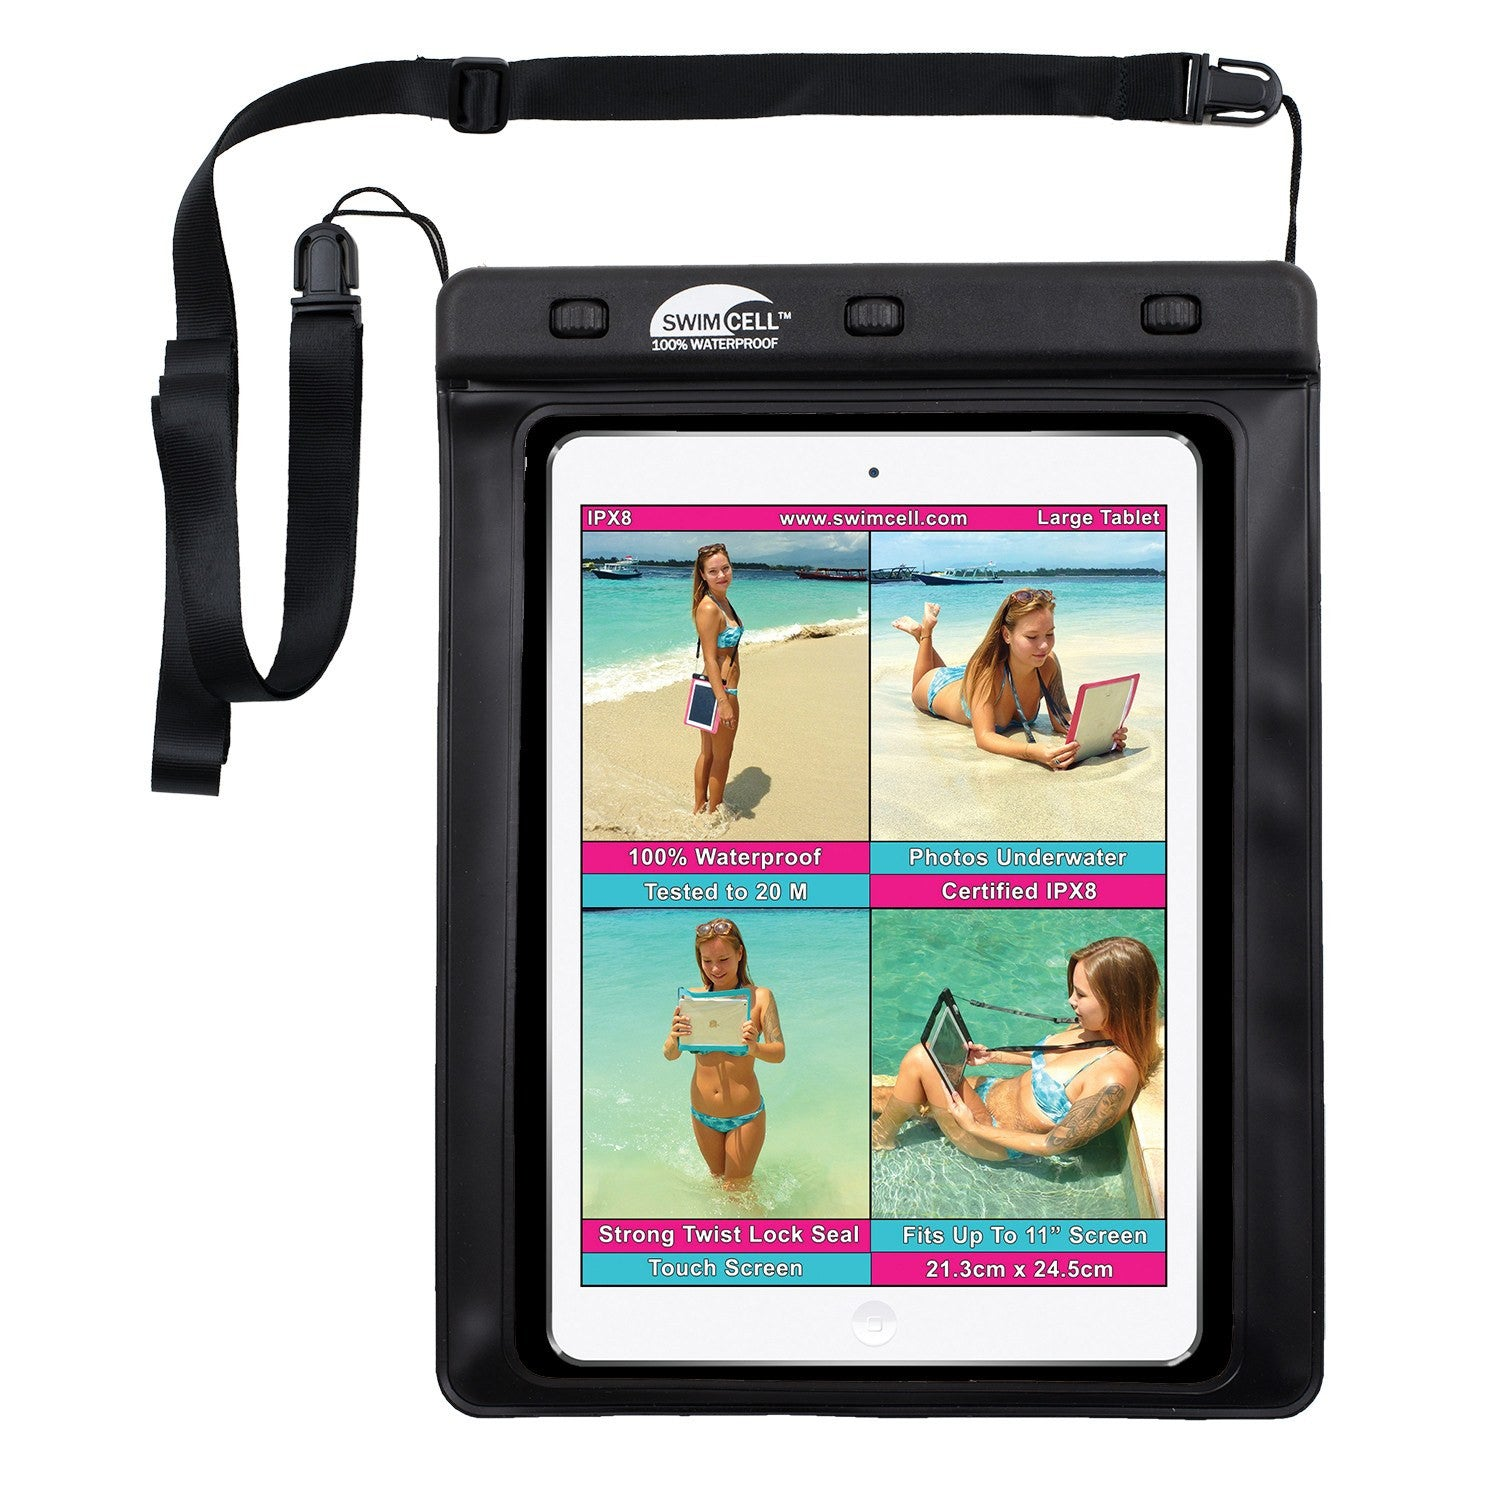 SwimCell 100% Waterproof Case For Large Tablets (21.3 x 25cm)